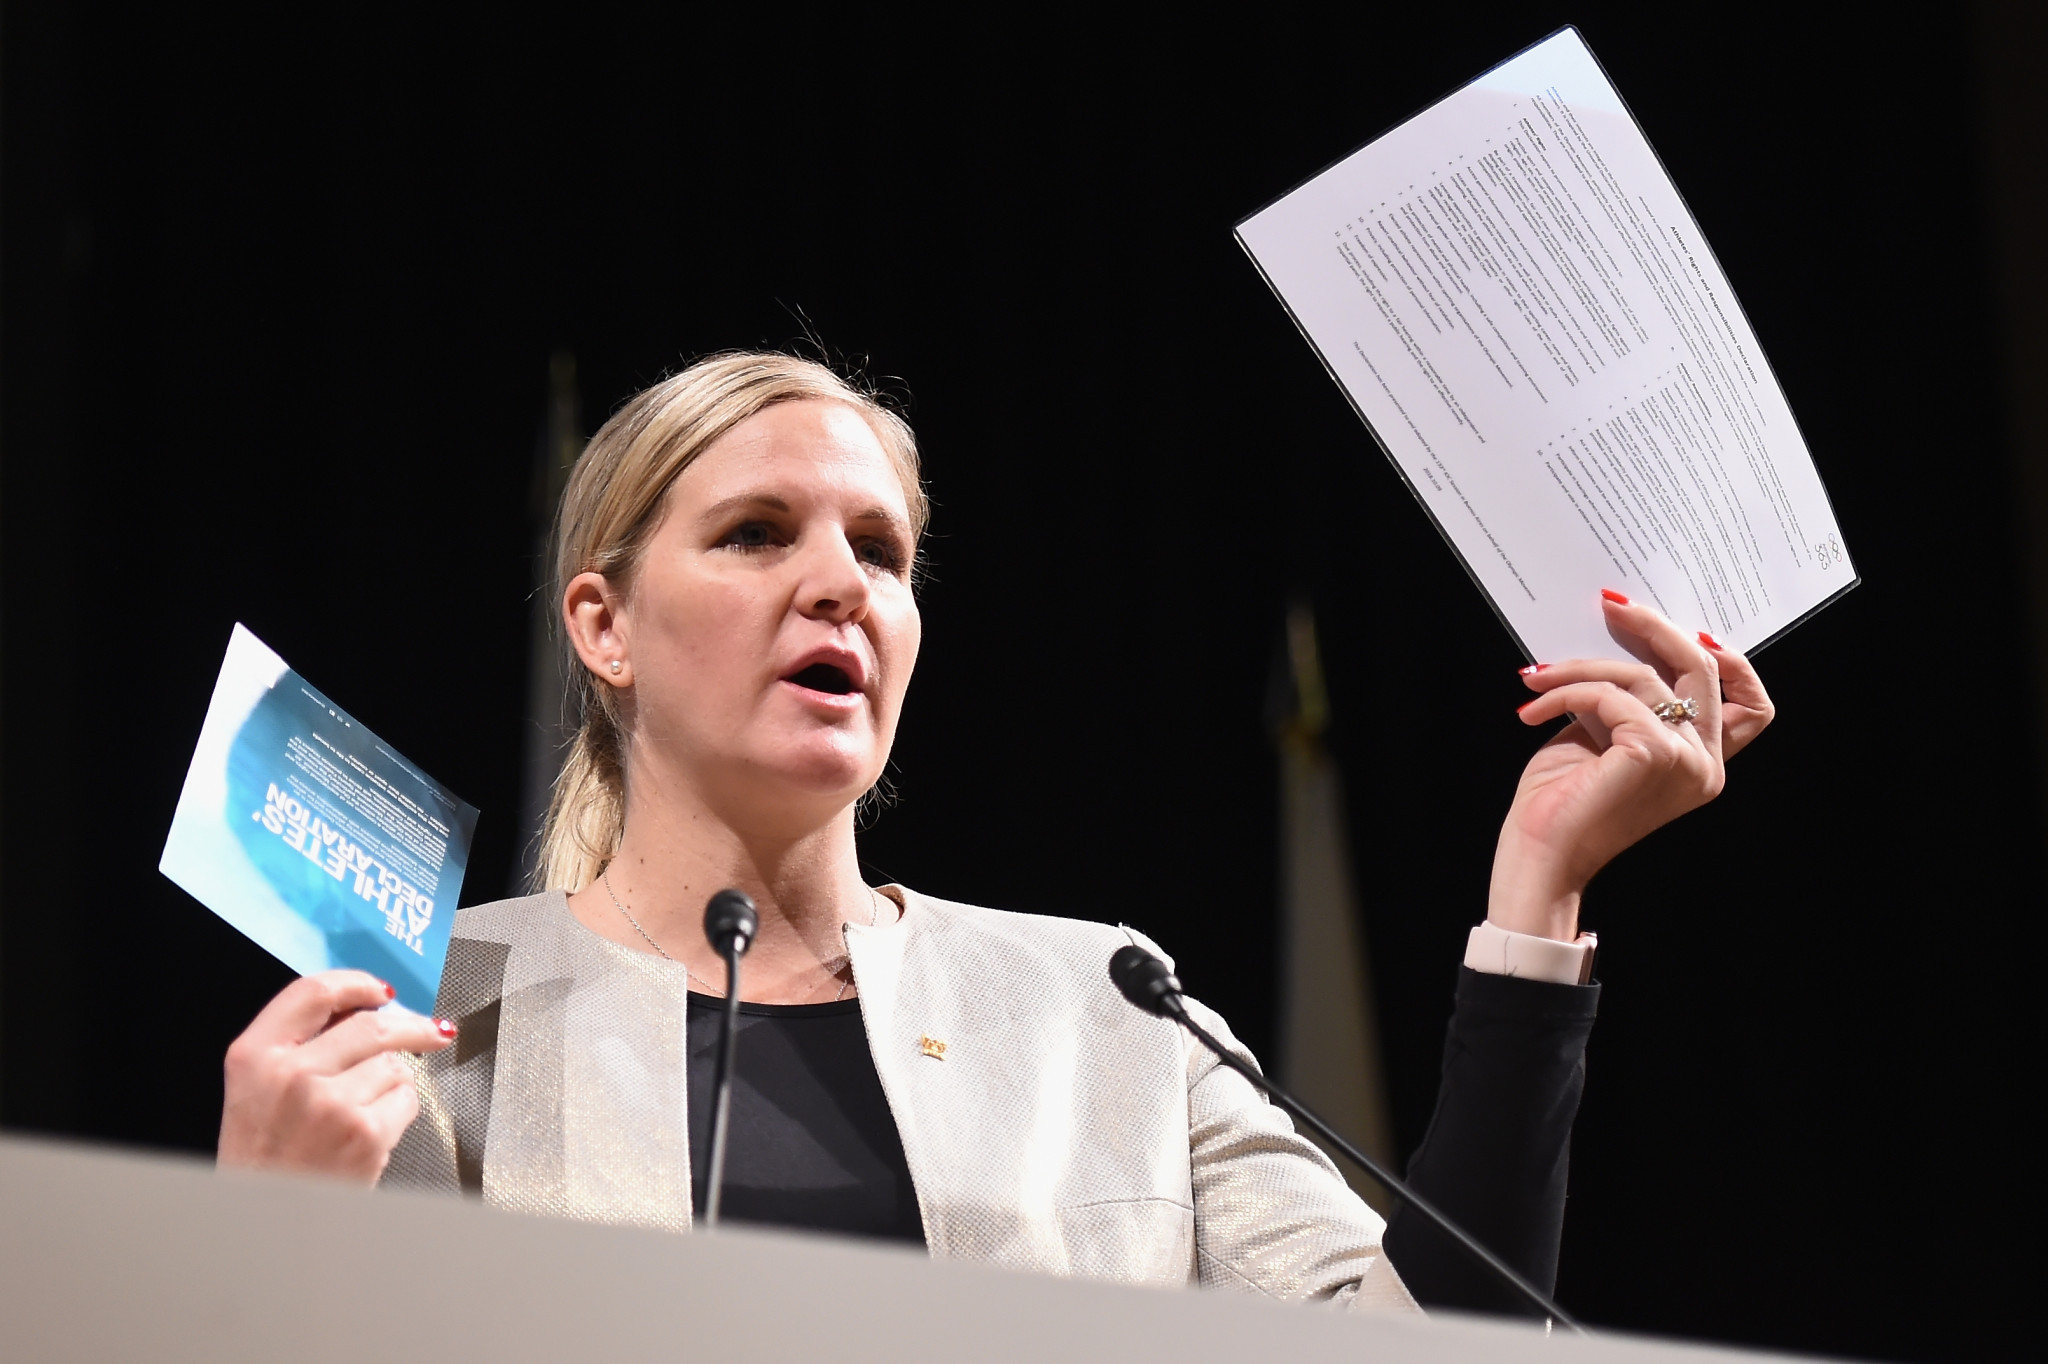 Chairperson Kirsty Coventry is among four departures from the IOC Athletes' Commission at Tokyo 2020 ©Getty Images